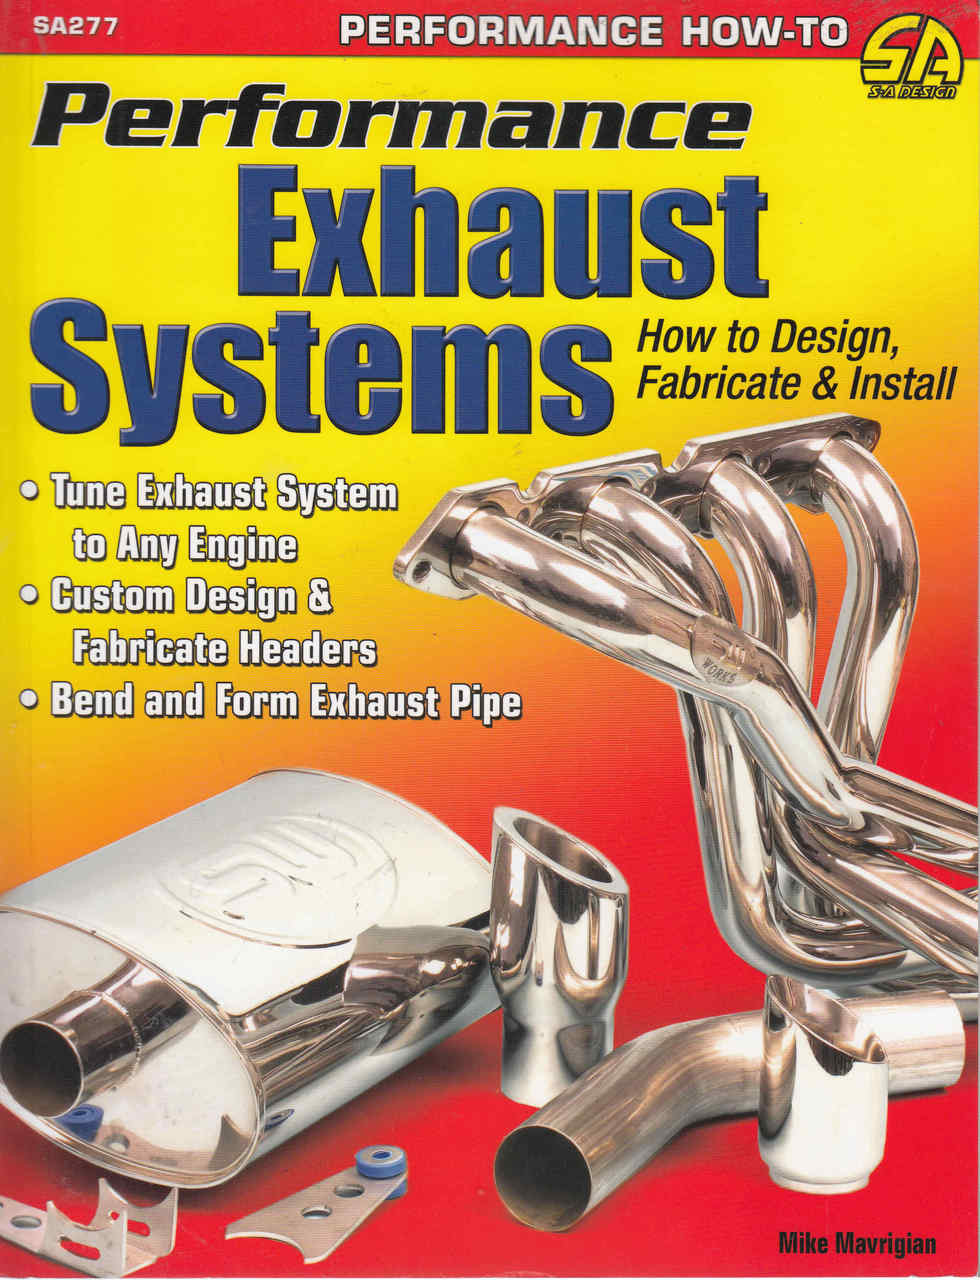 Performance Exhaust Systems How to Design, Fabricate & Install